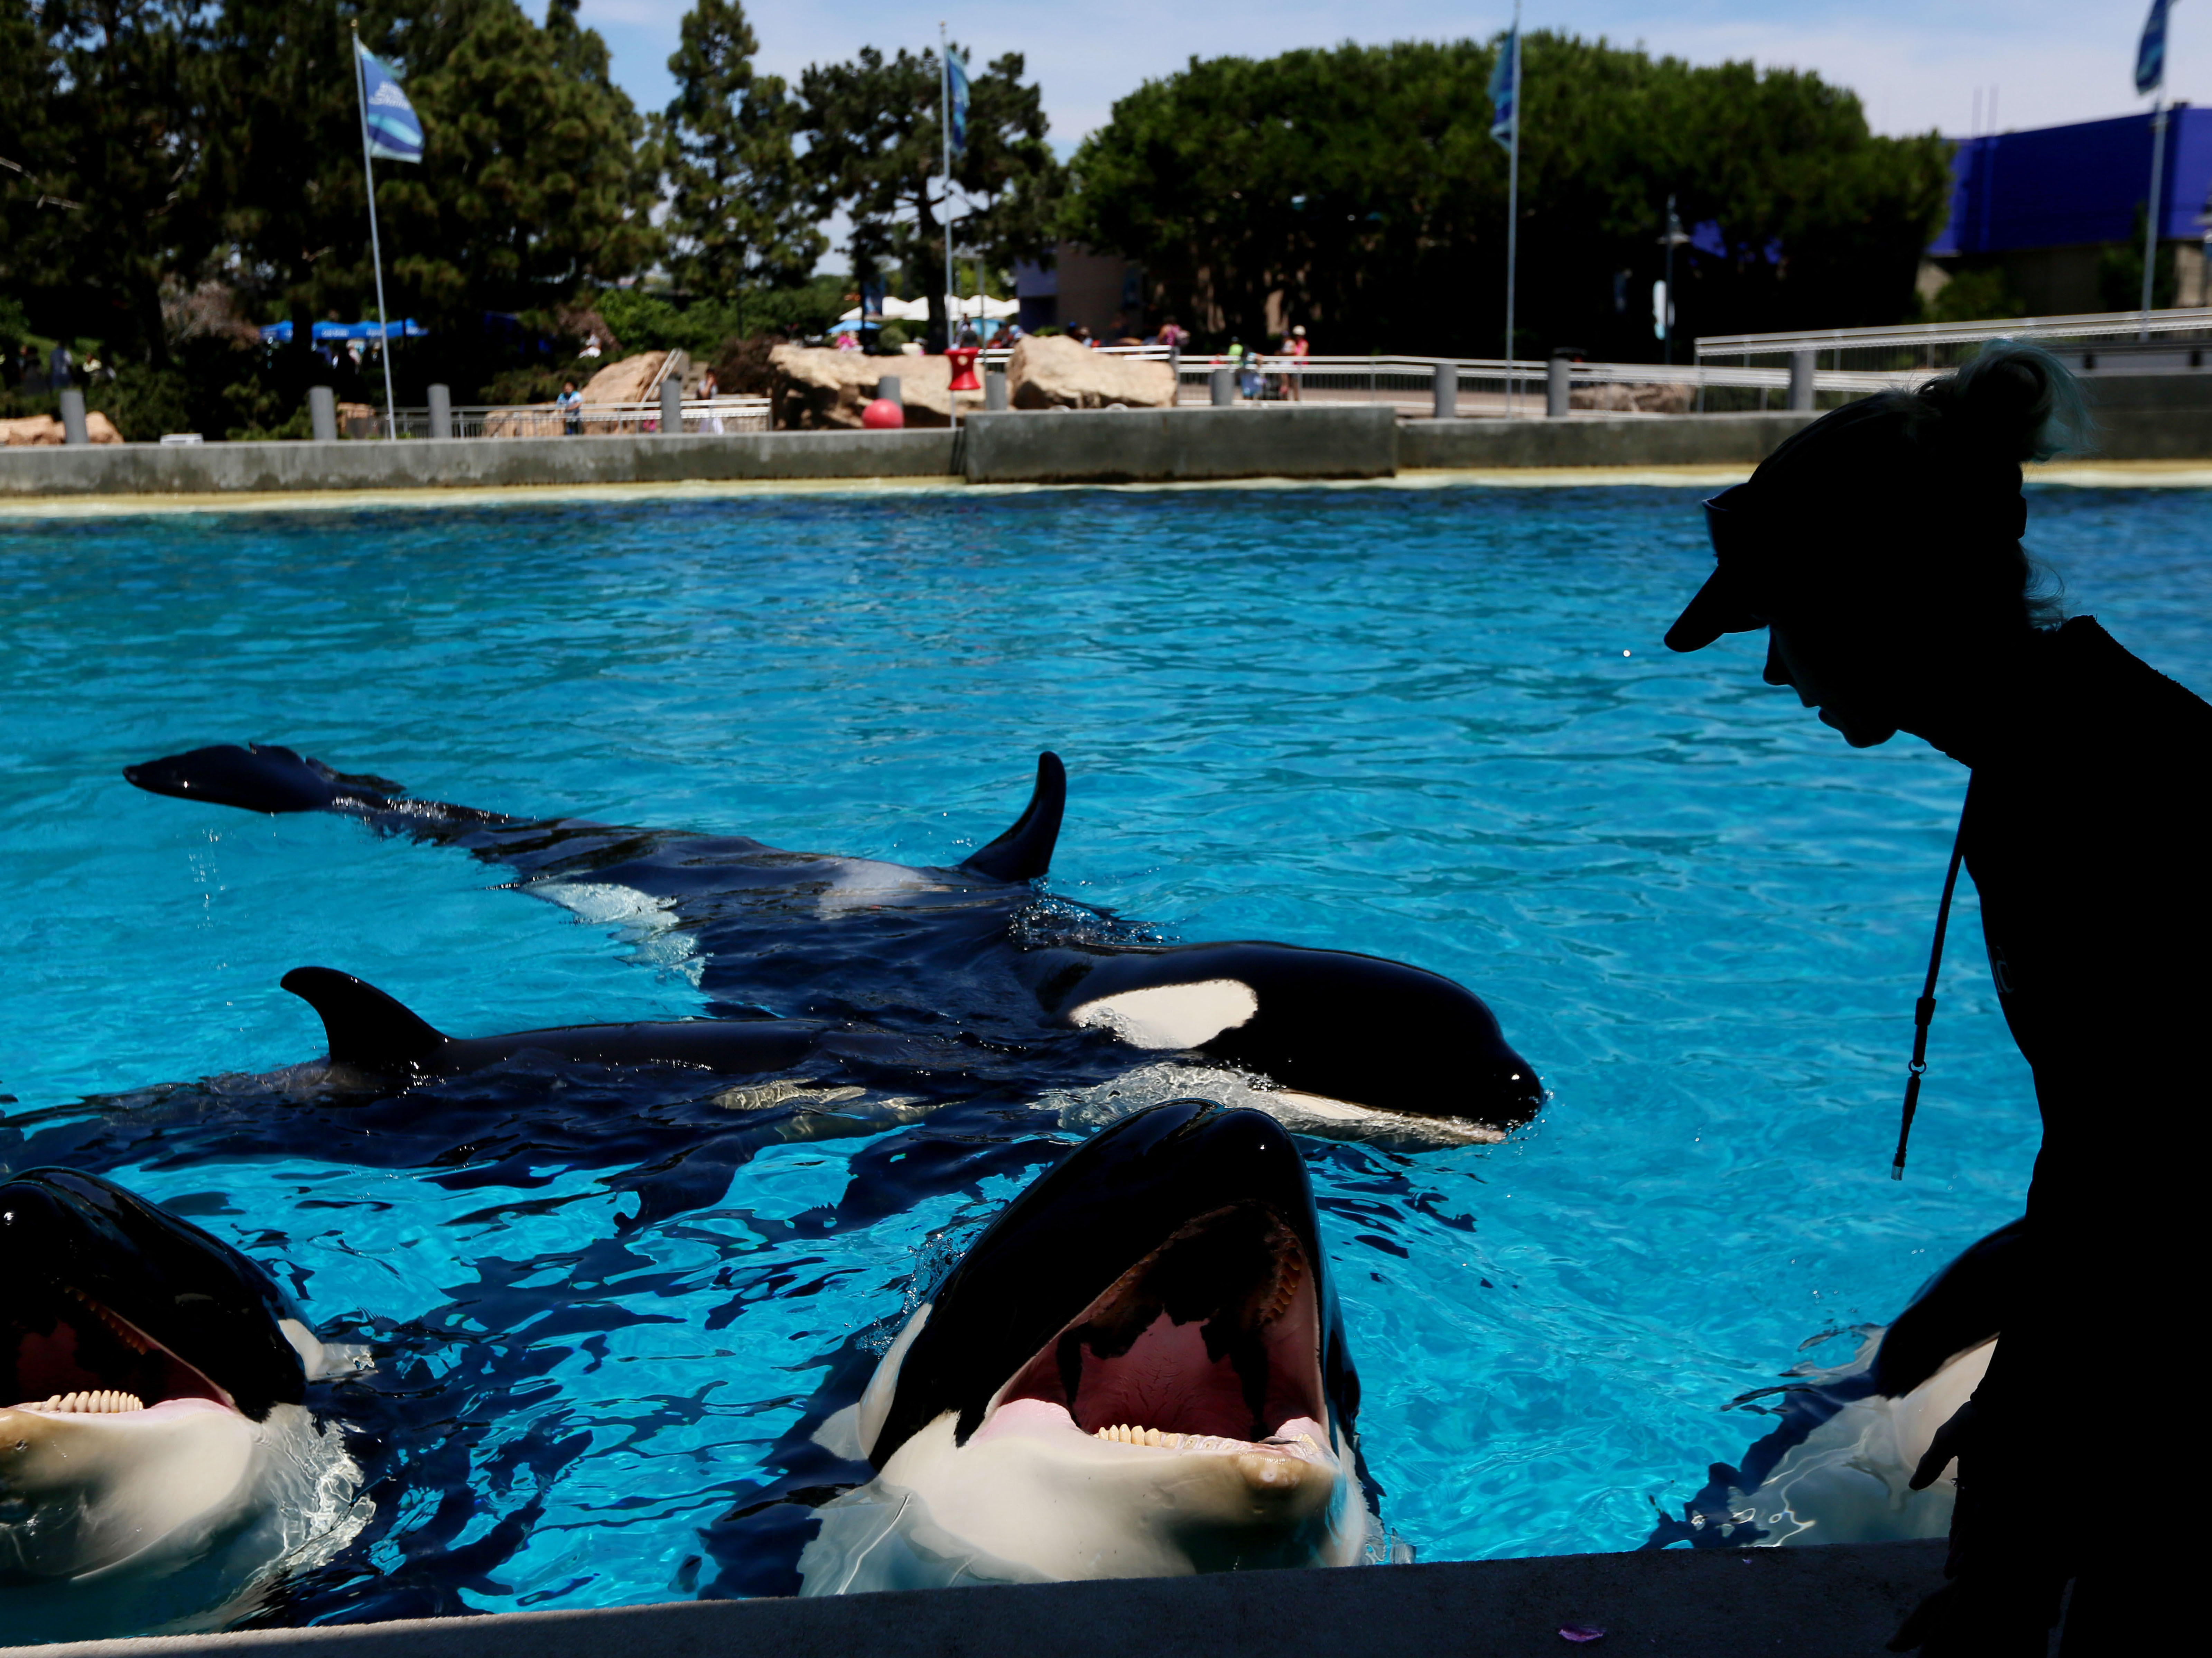 Lawmaker Wants To Ban Orcas At San Diego's SeaWorld